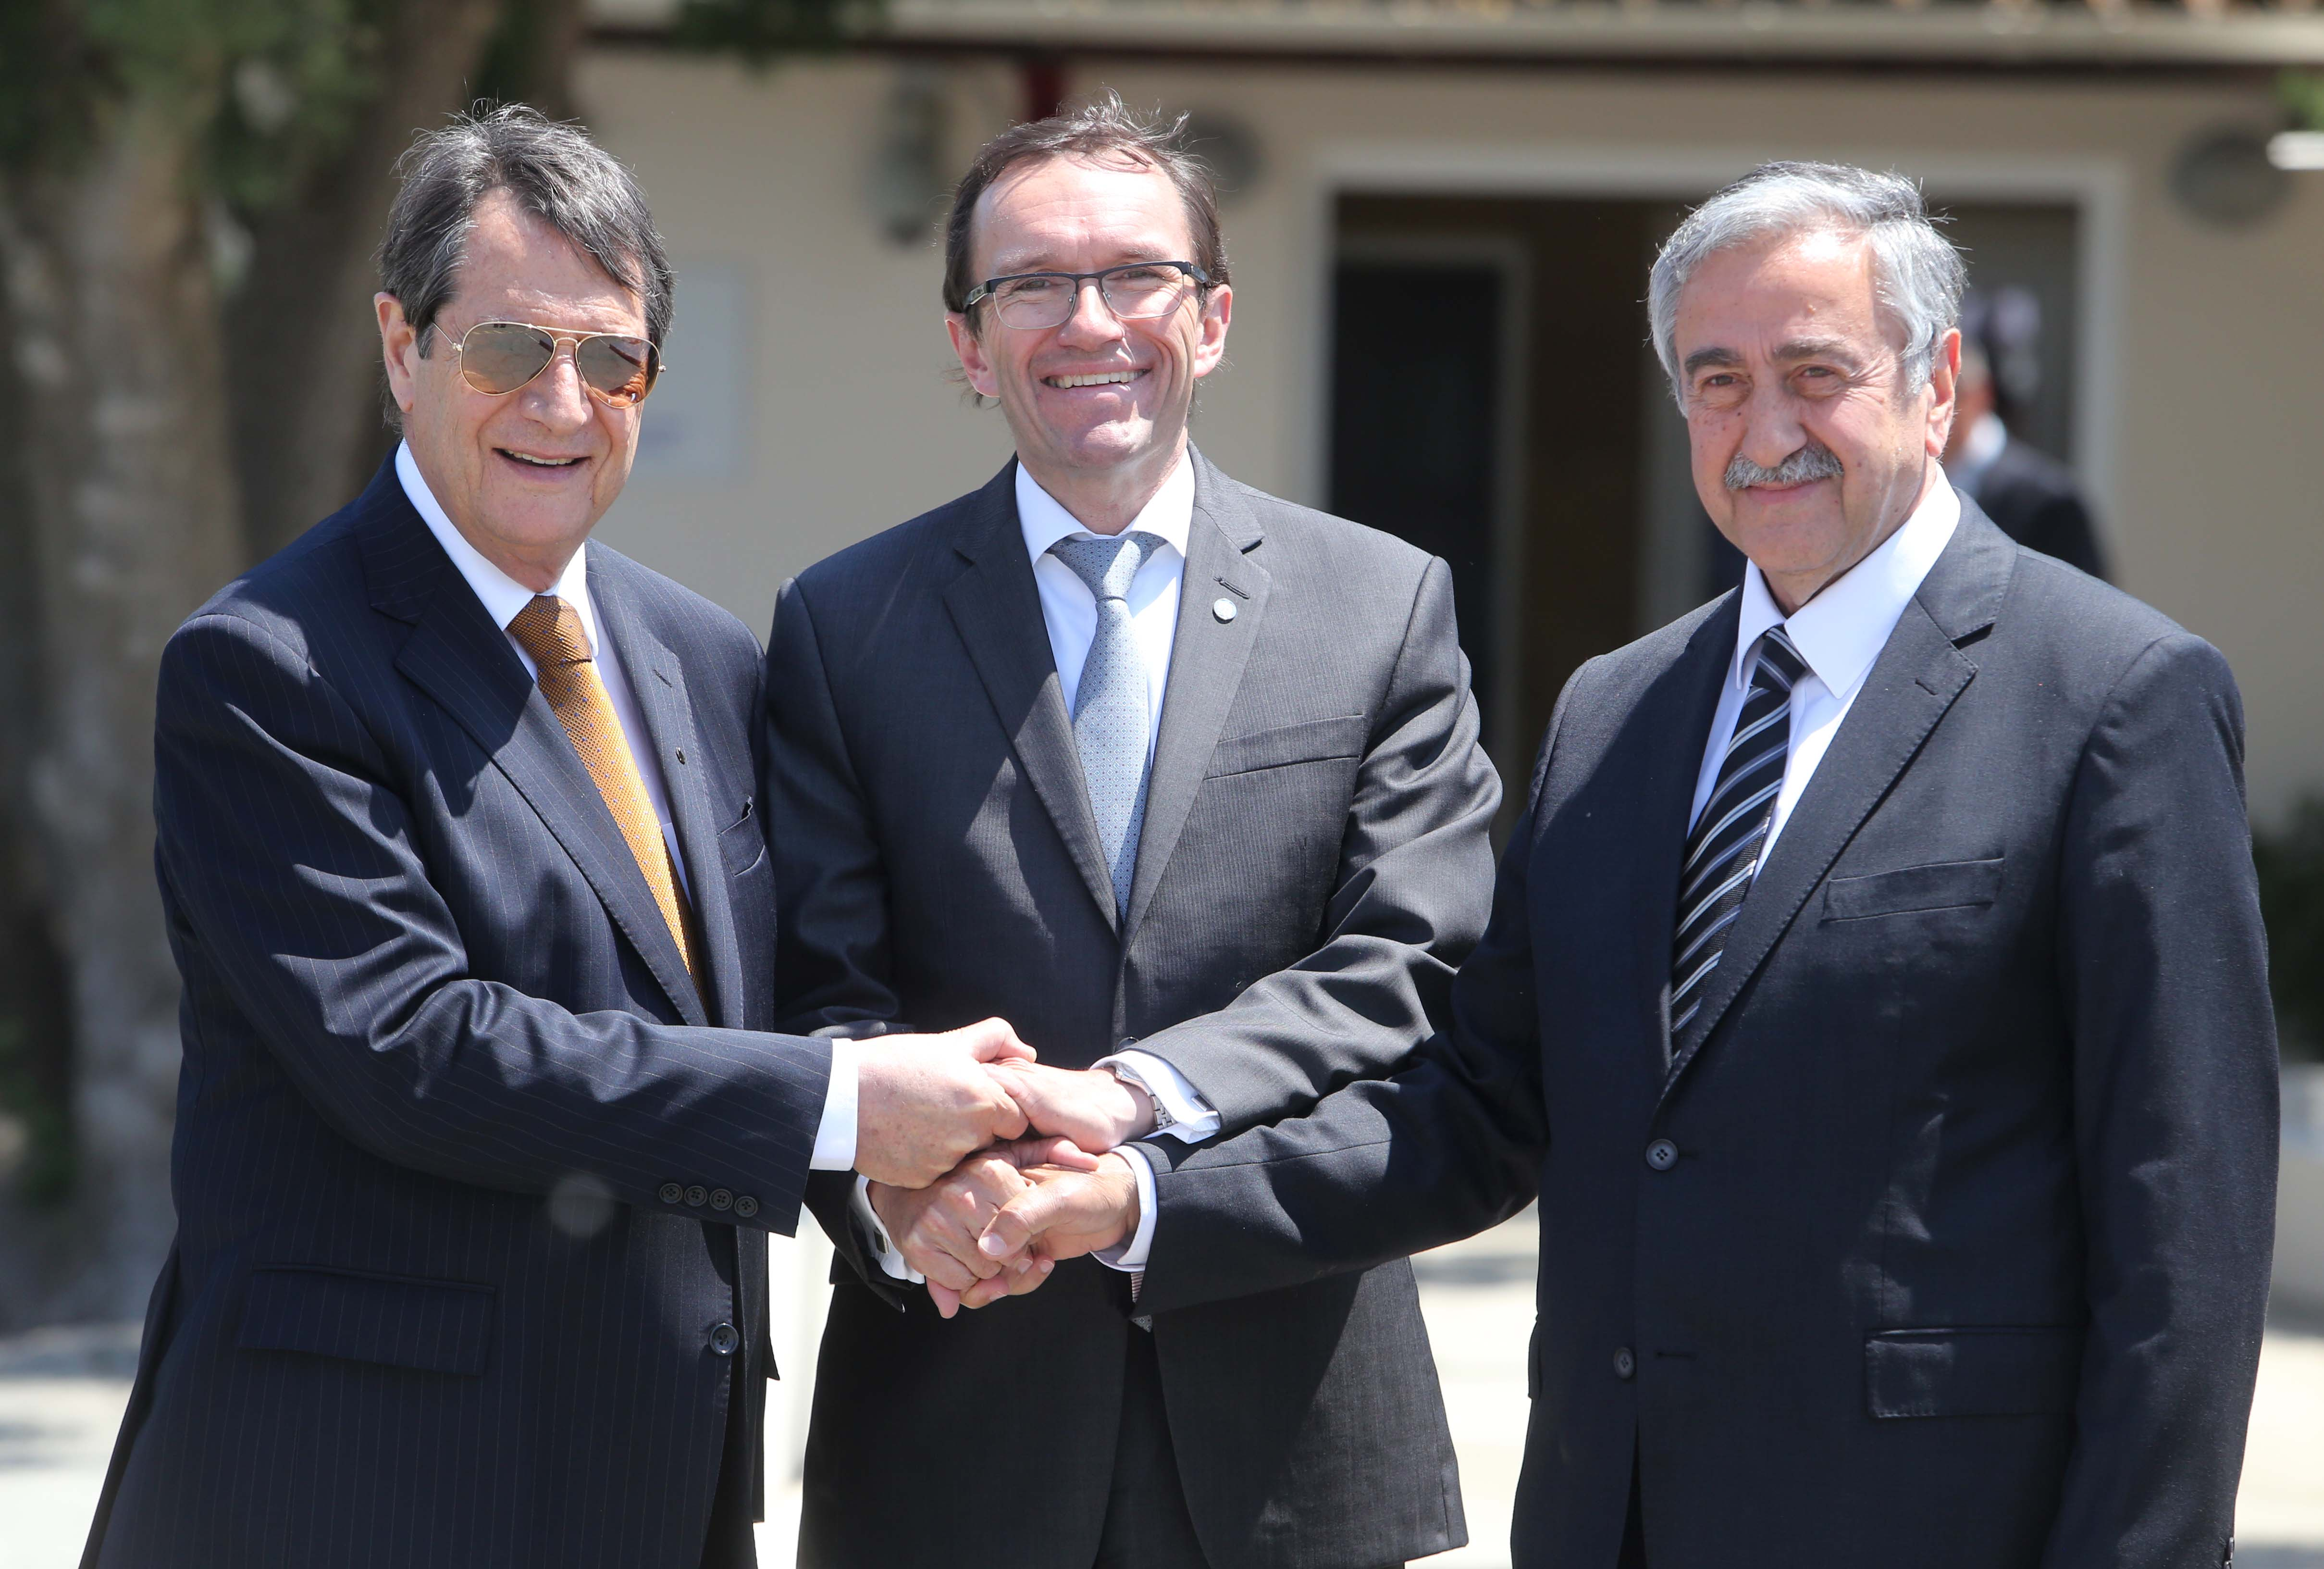 The Greek-Cypriot side proposes to opening of five roadblocks